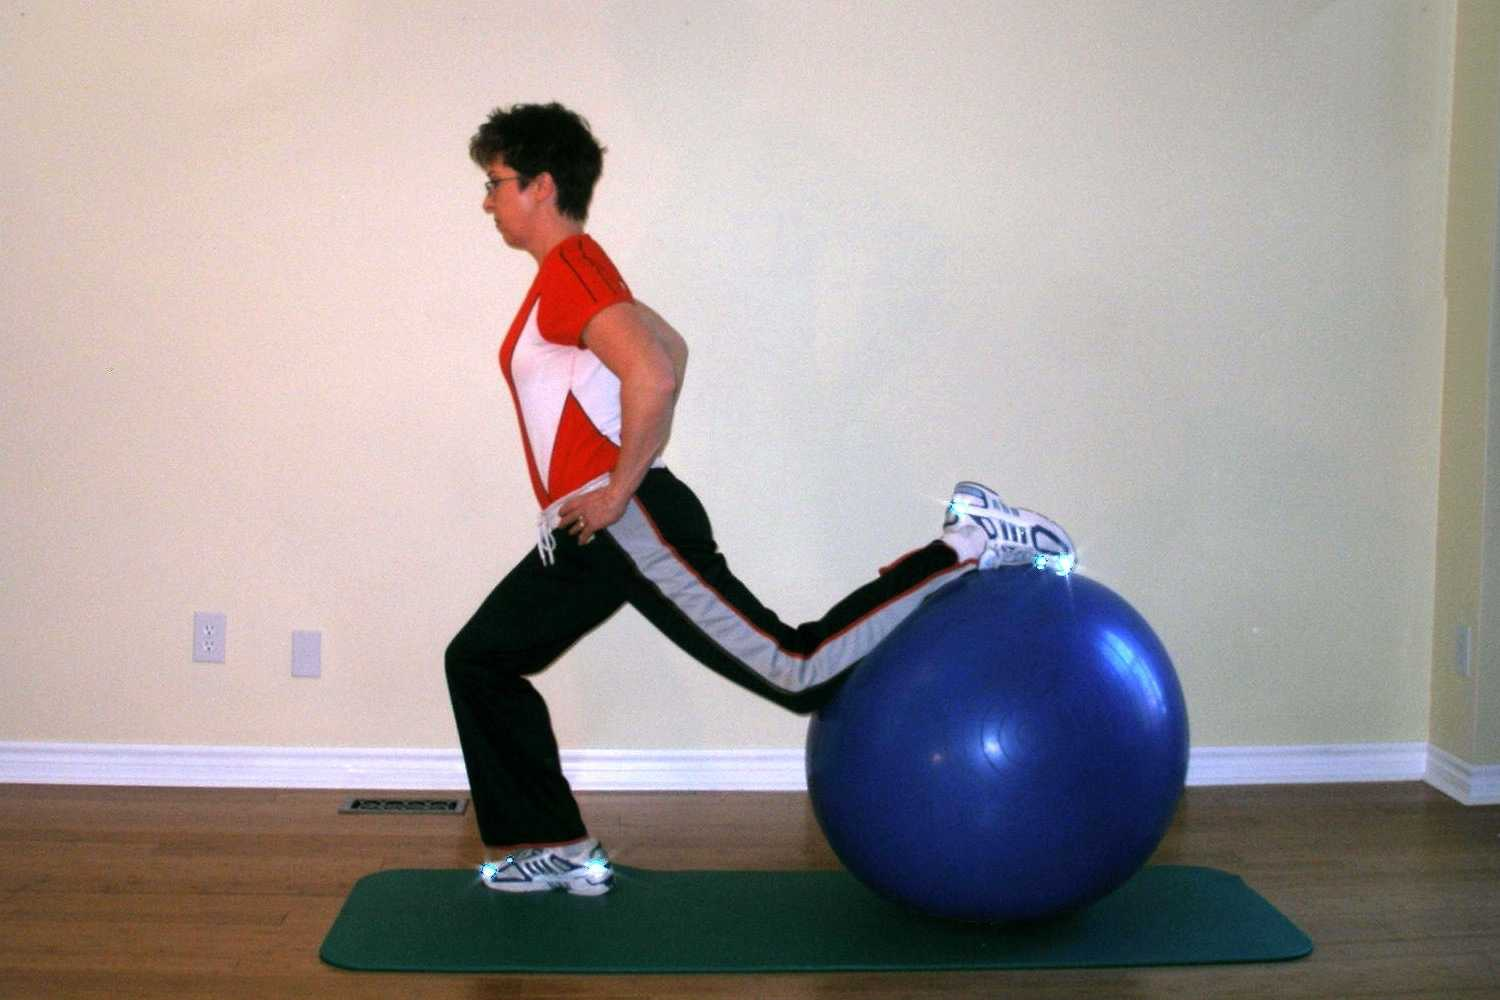 lunge exercise with a ball finish